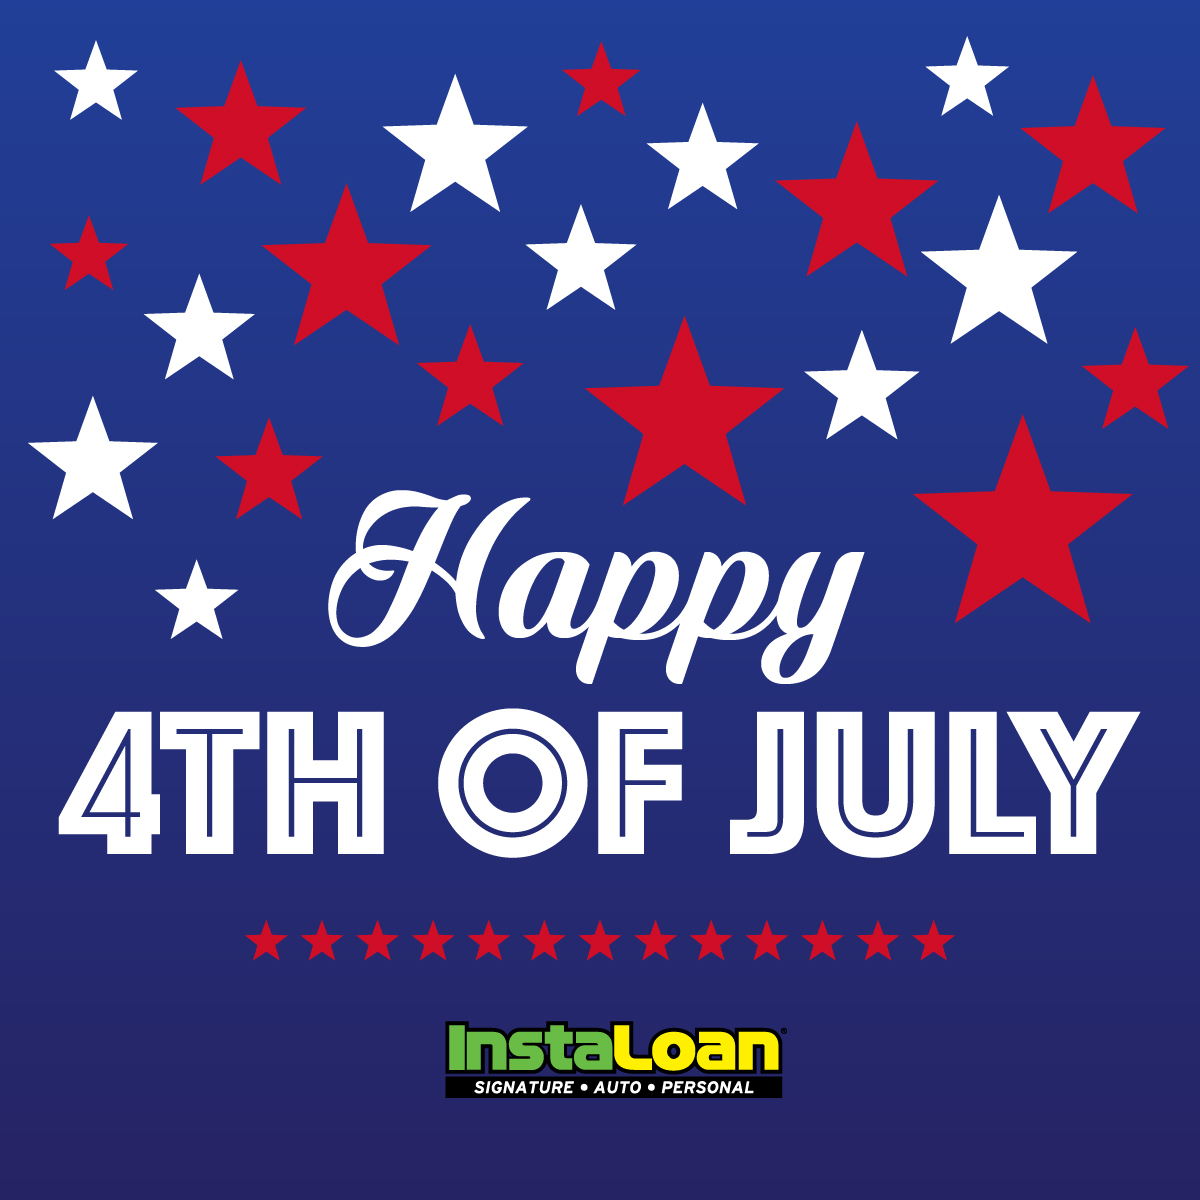 Happy Independence Day! 4th of July